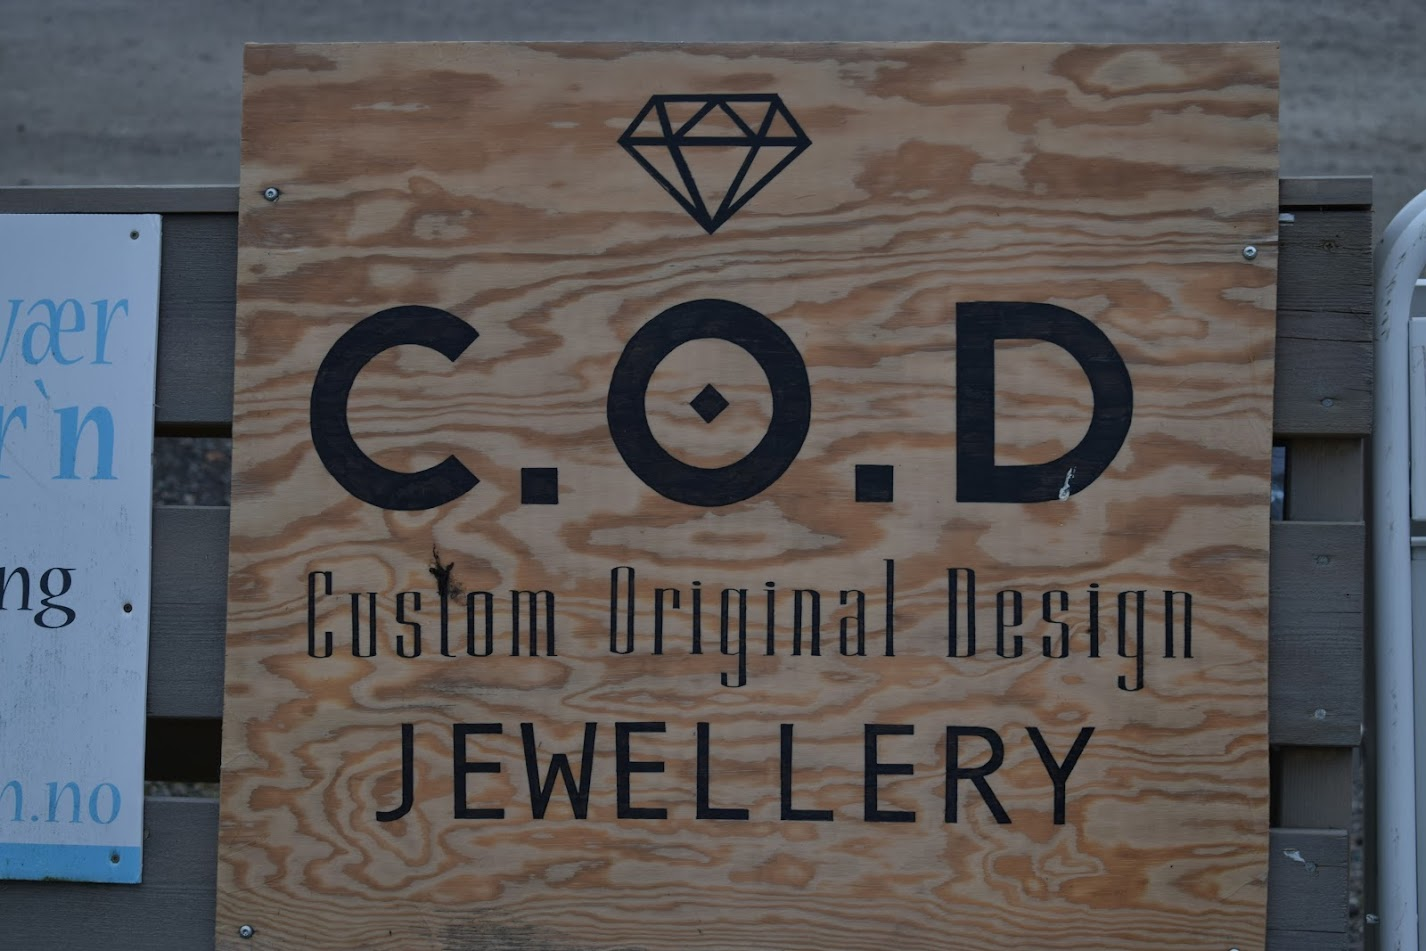 Cods + Norway = … diamonds?!